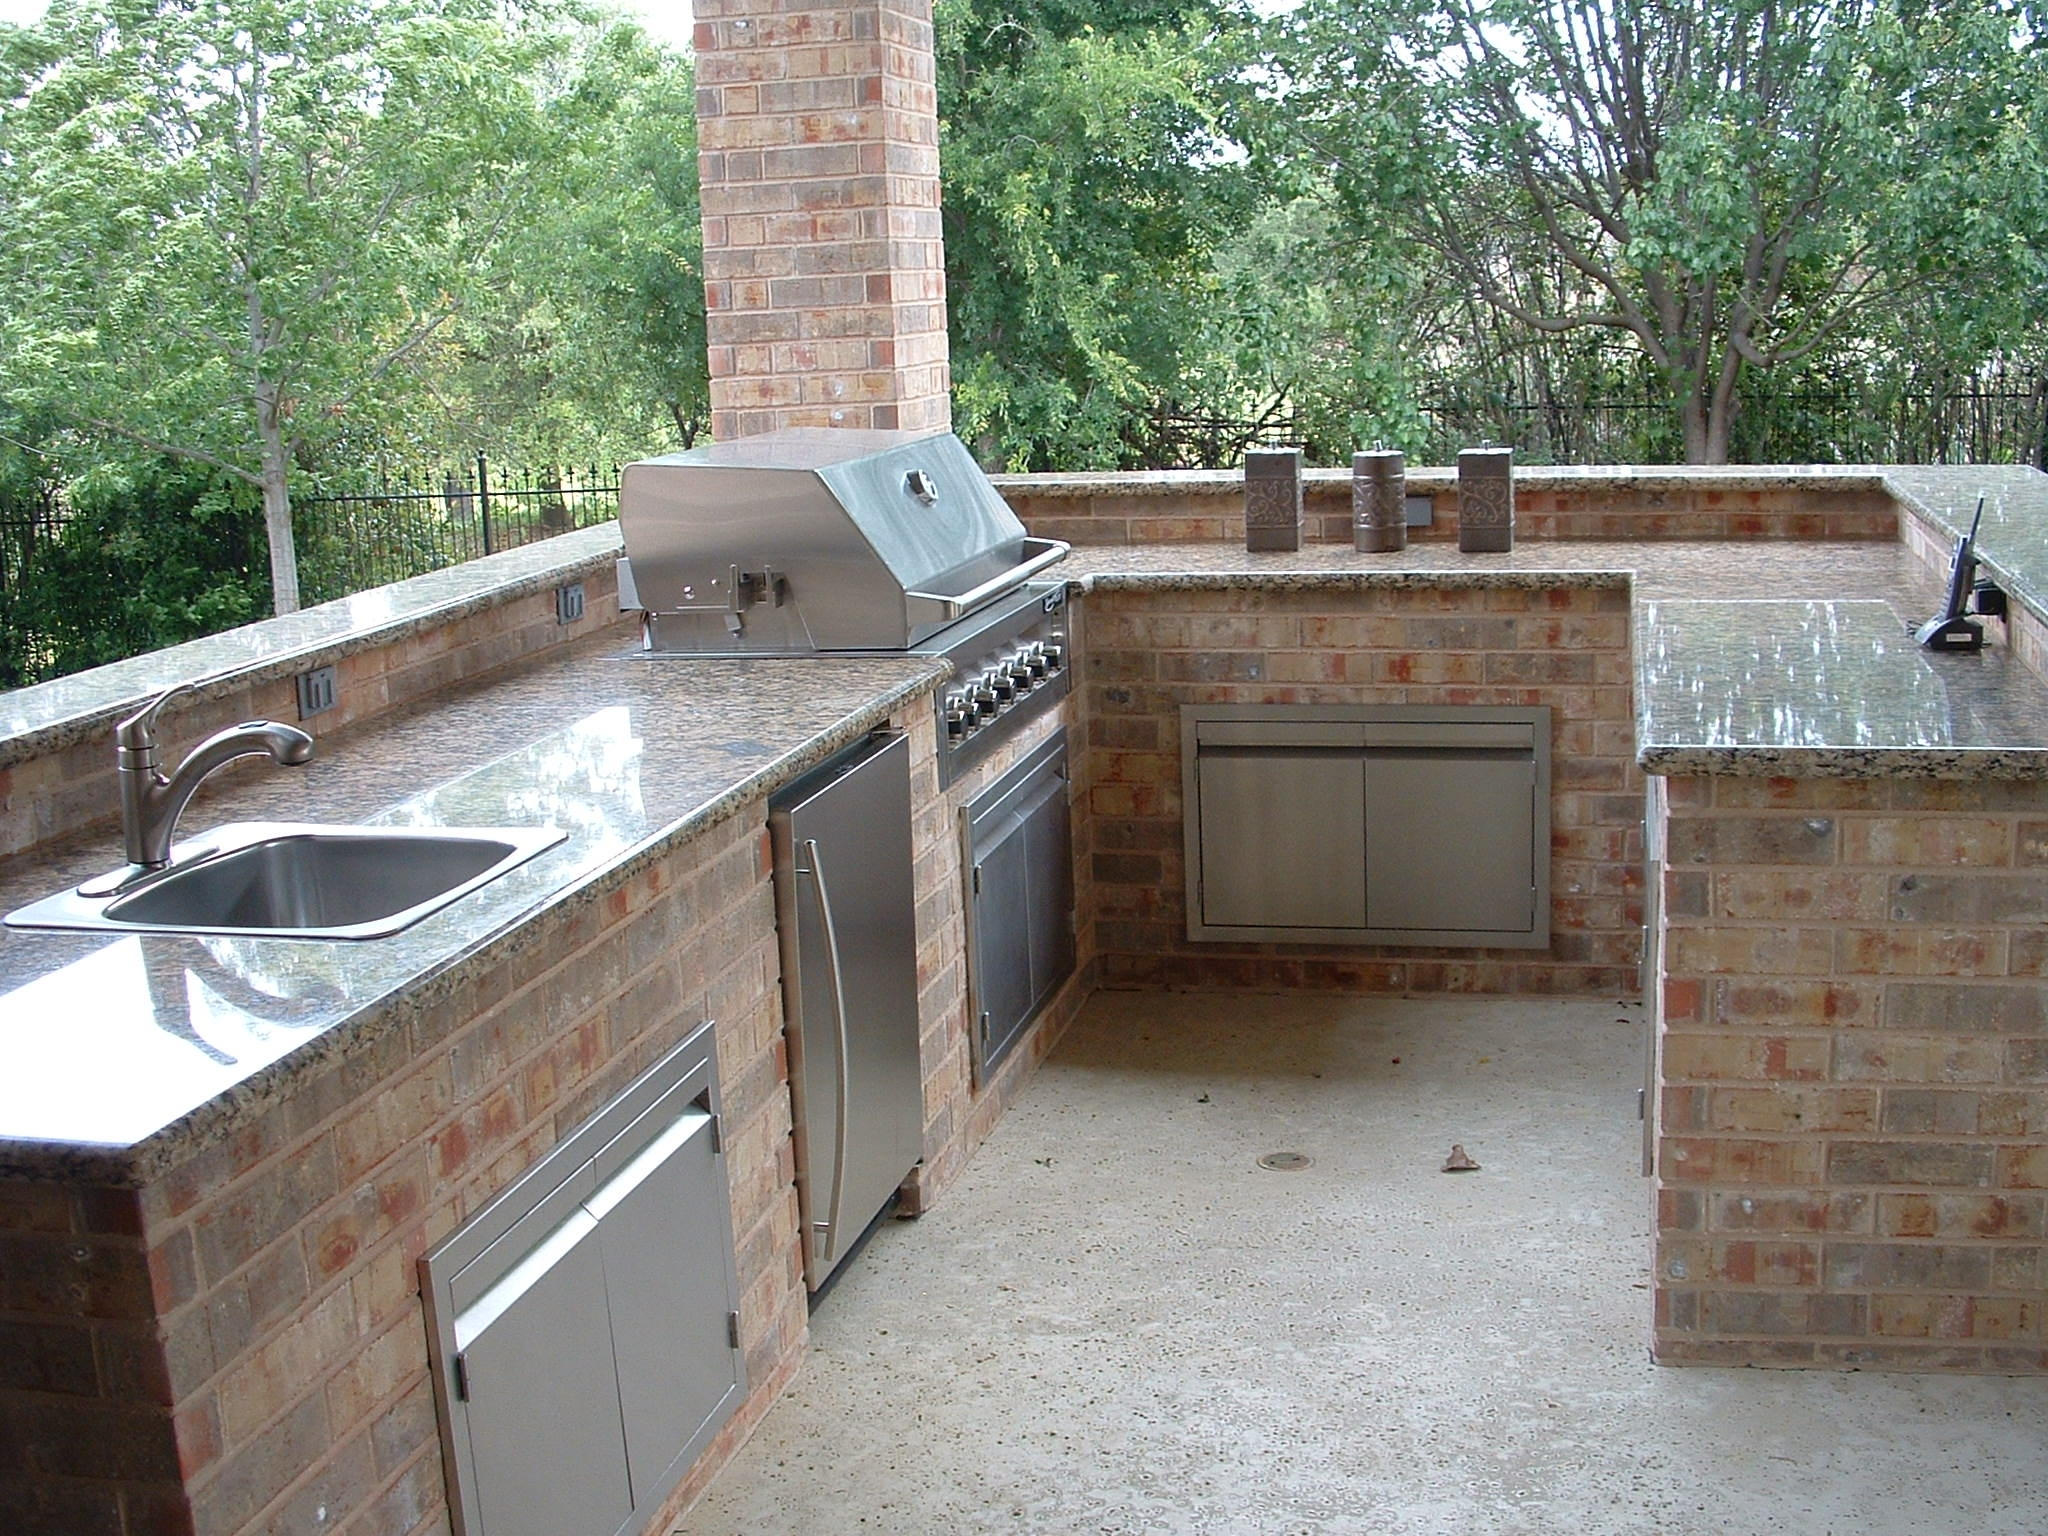 Image of: Outdoor Kitchen Granite Countertops Video And Photos Within Outdoor Kitchen Granite Countertops Outdoor Kitchen Granite Countertops Design